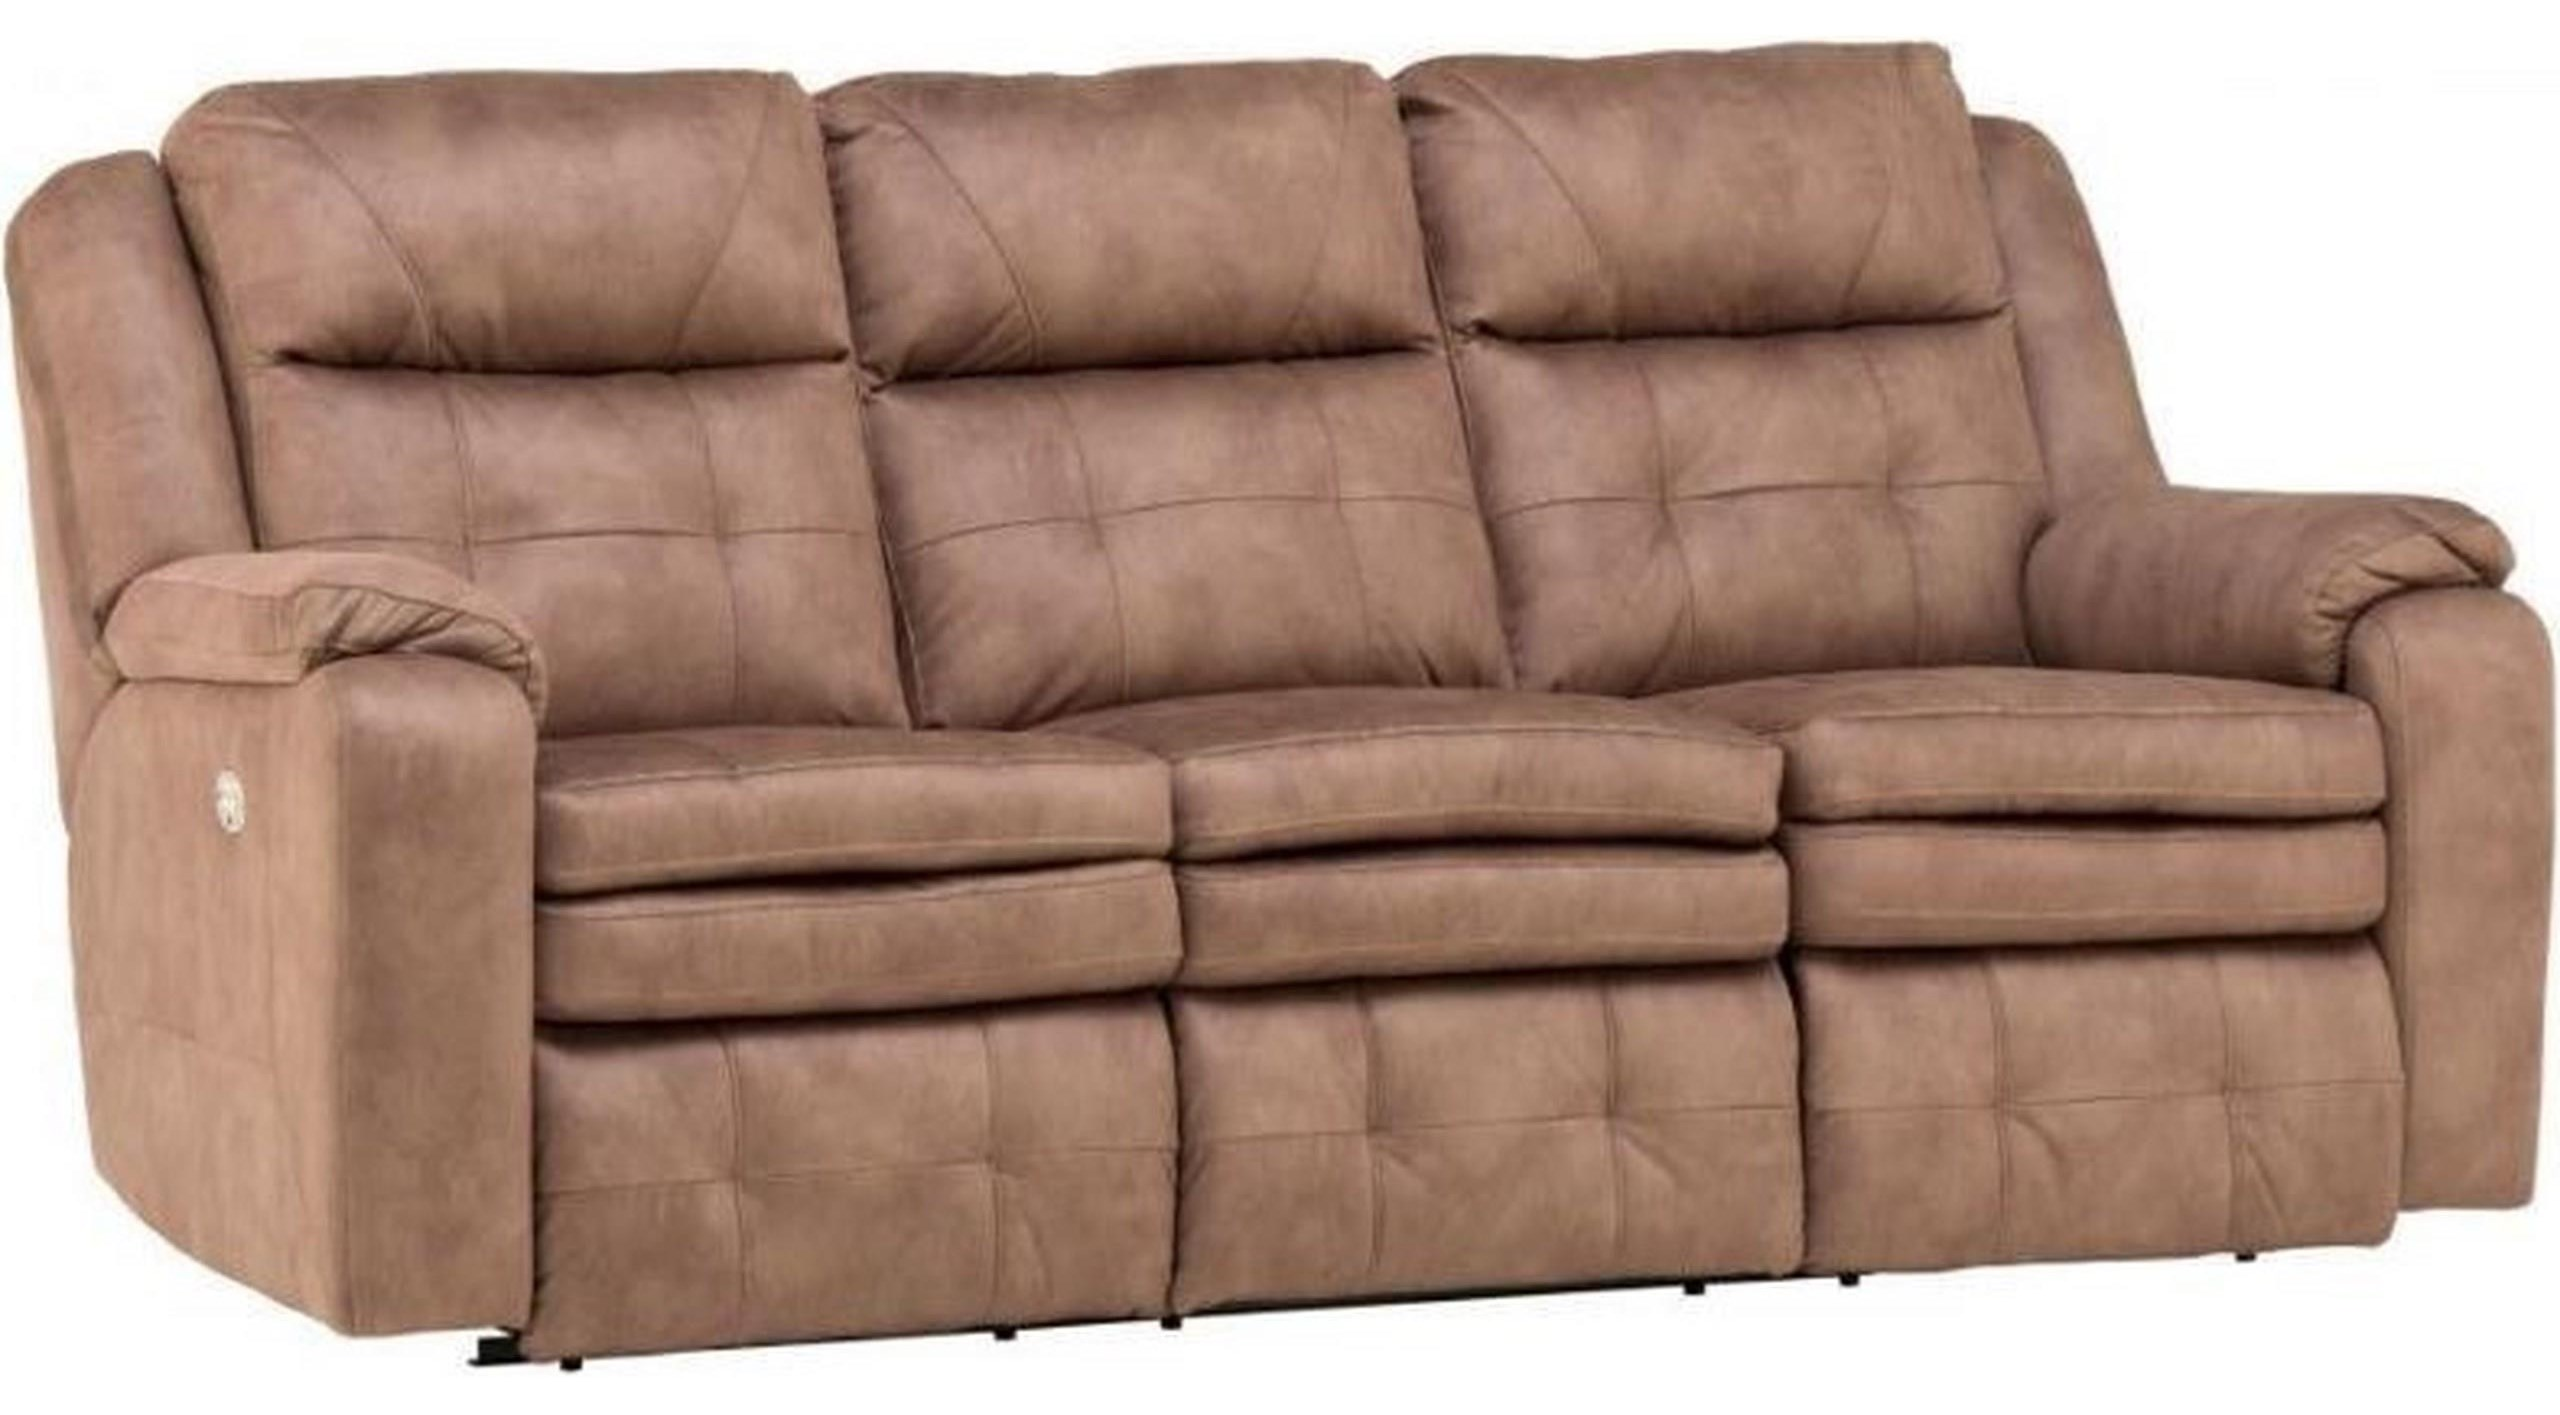 Inspire Power Headrest Reclining Sofa by Southern Motion at Crowley Furniture & Mattress